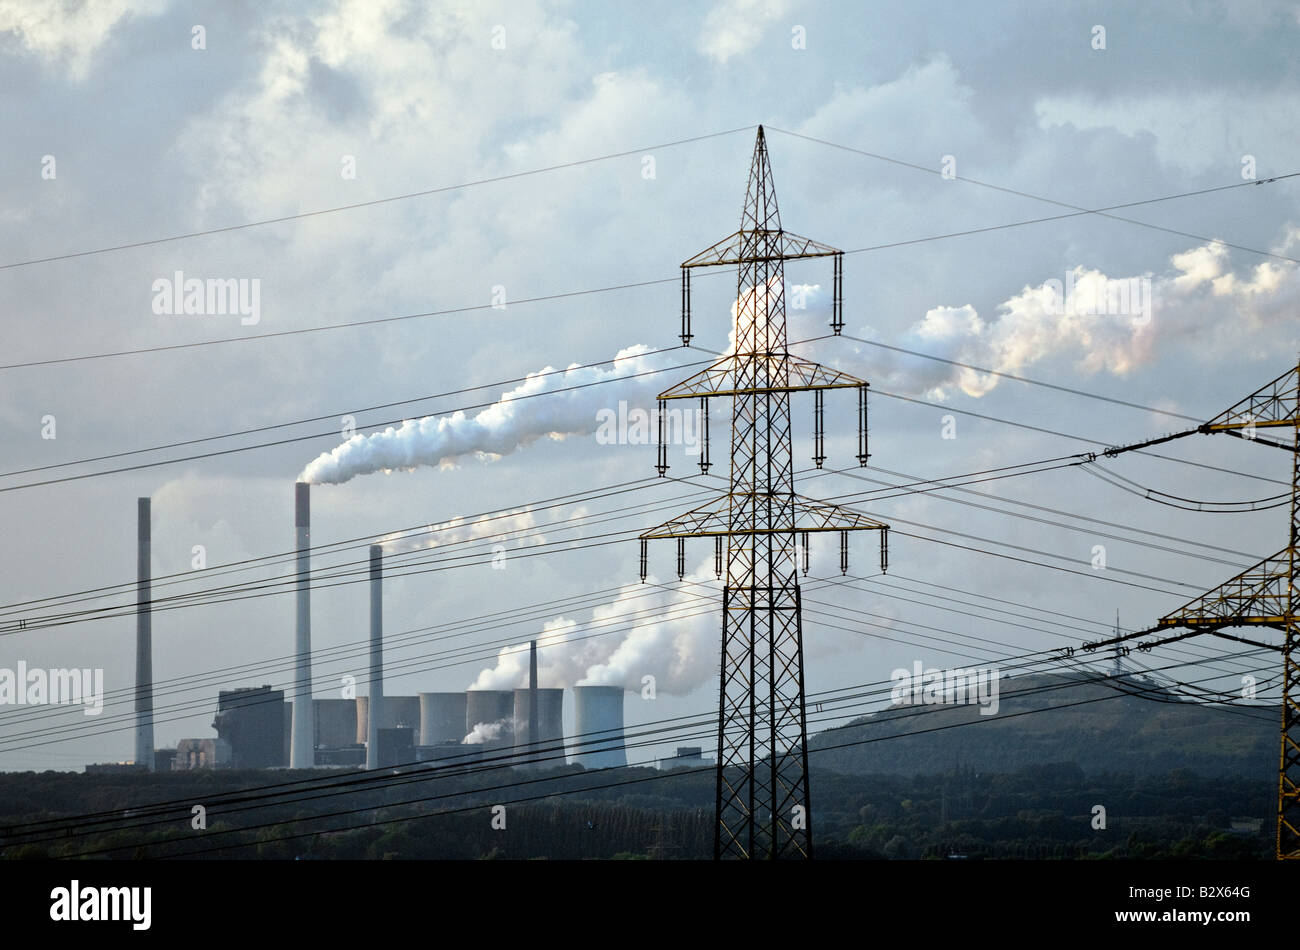 Scholven coal-fired power station in Gelsenkirchen in the Ruhr Valley, Germany. Owned by power company E.ON. Seen - Stock Image